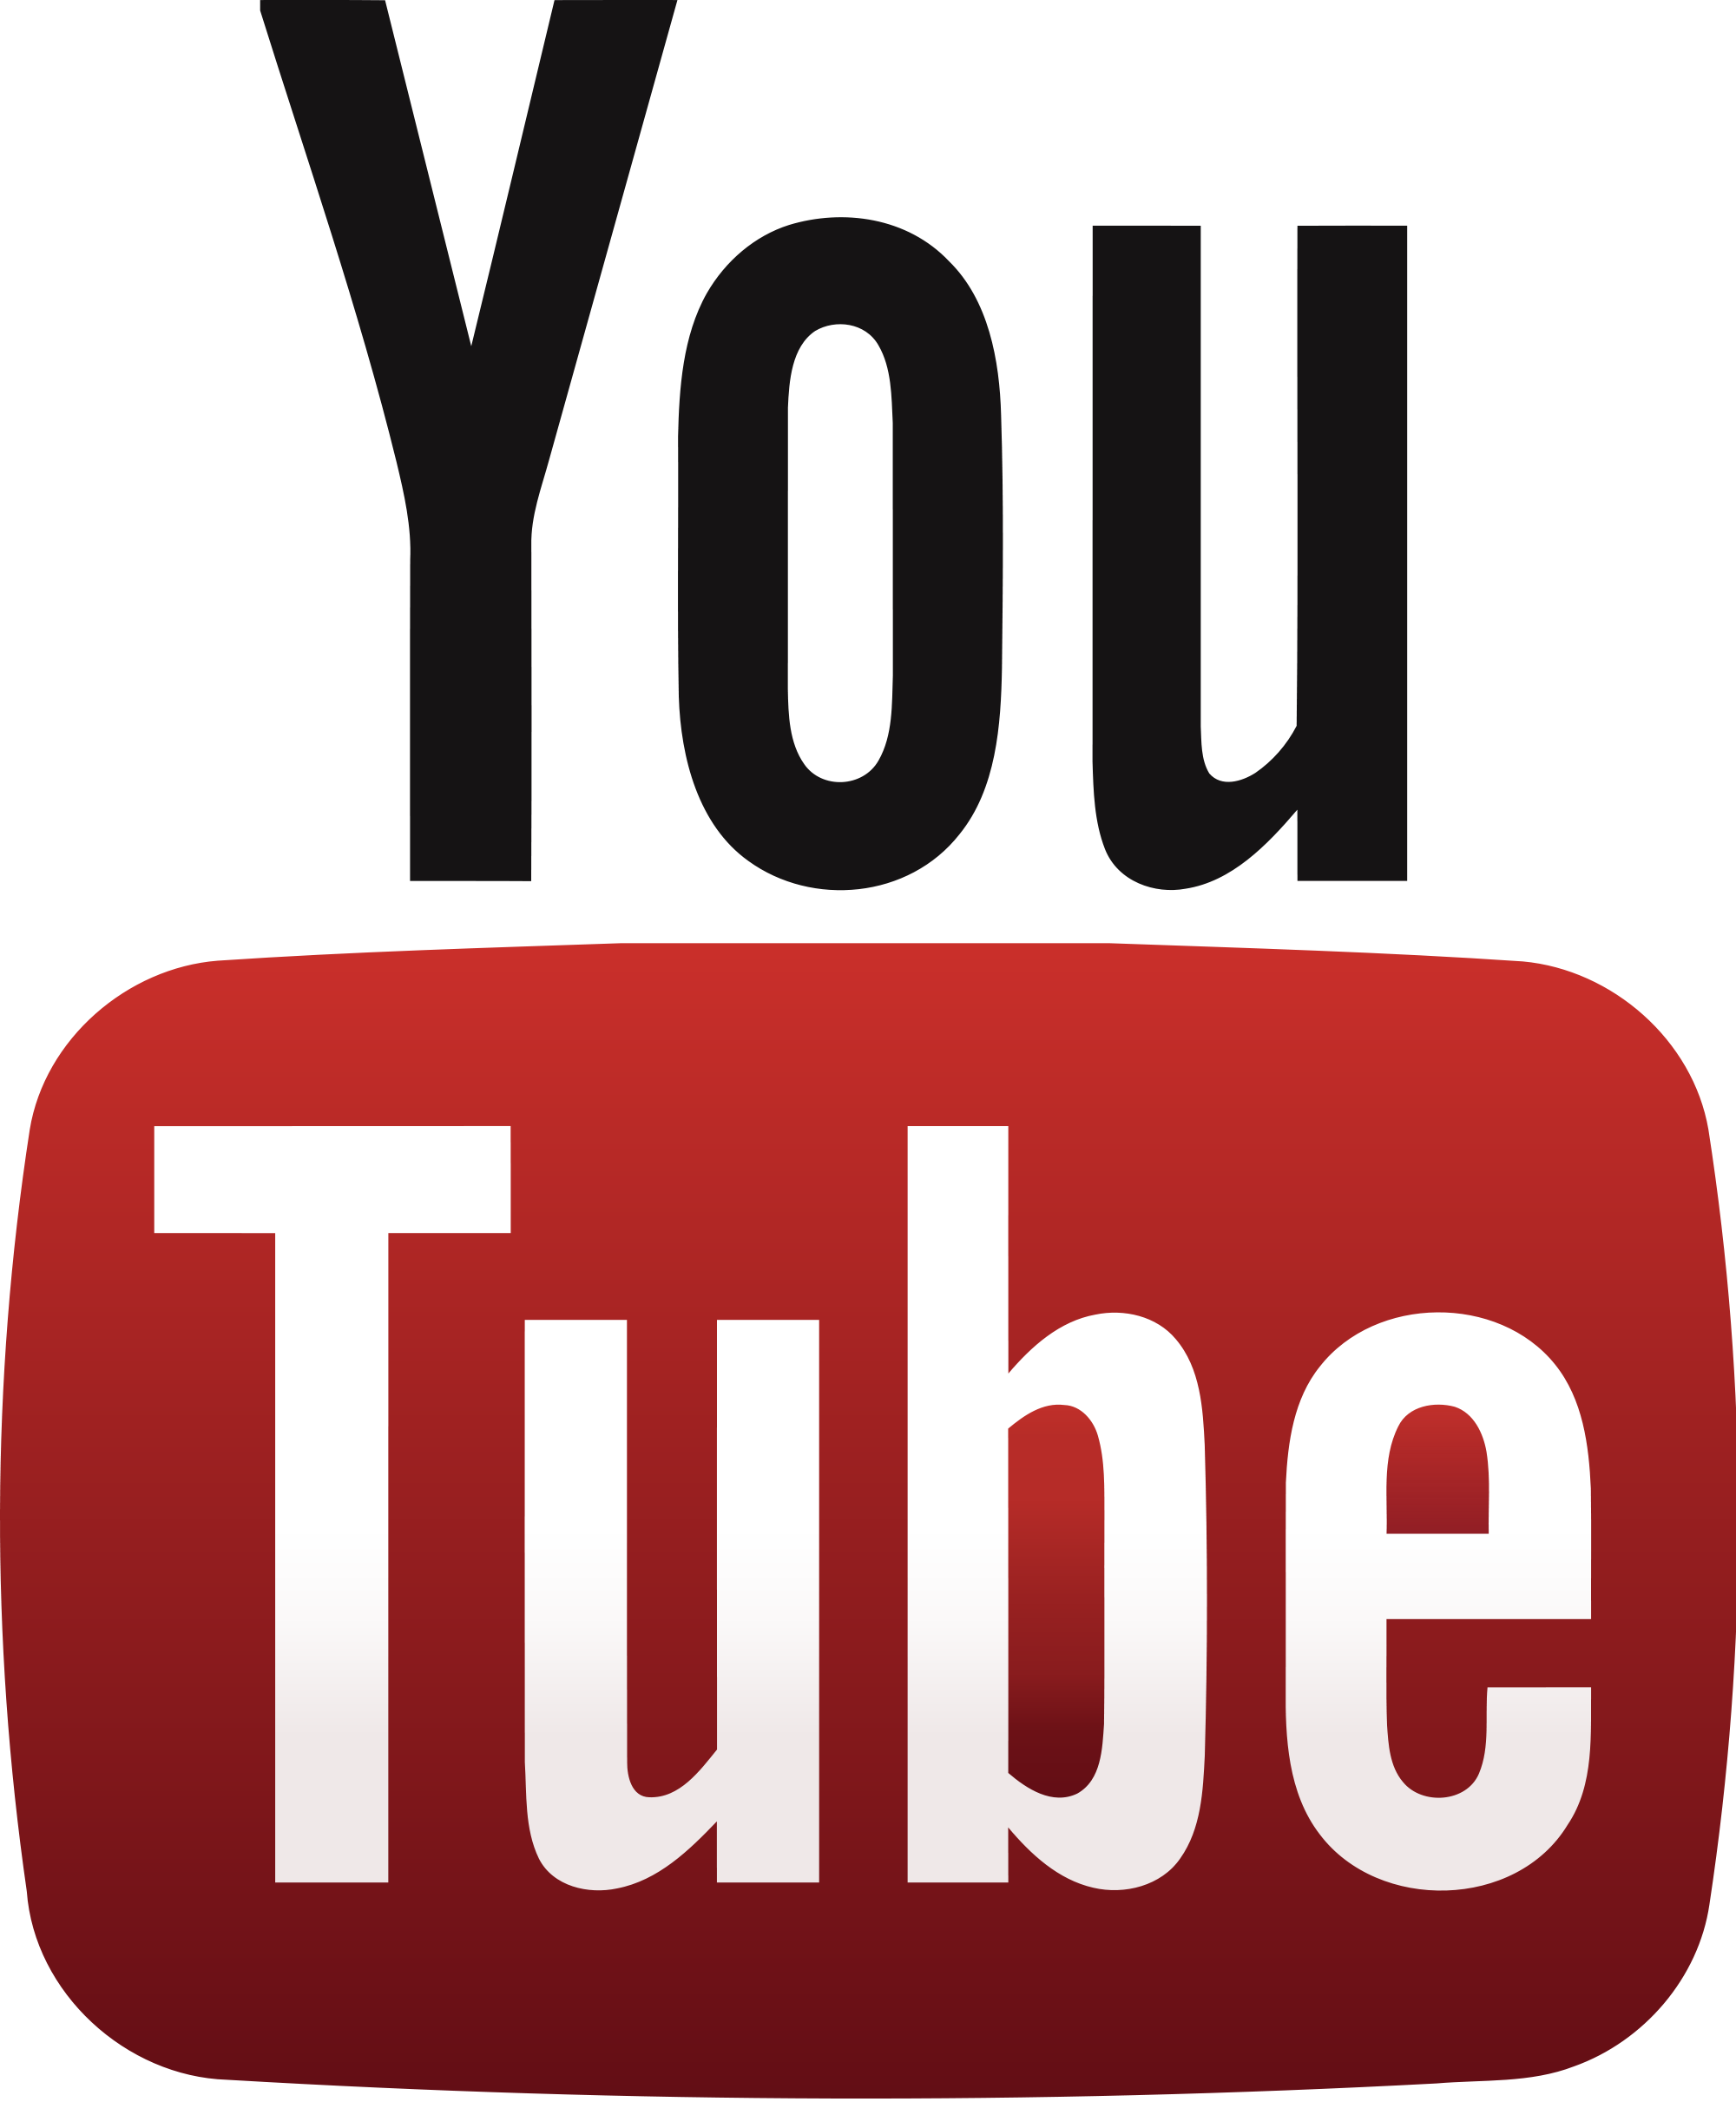 Youtube Transparent Background PNG Image